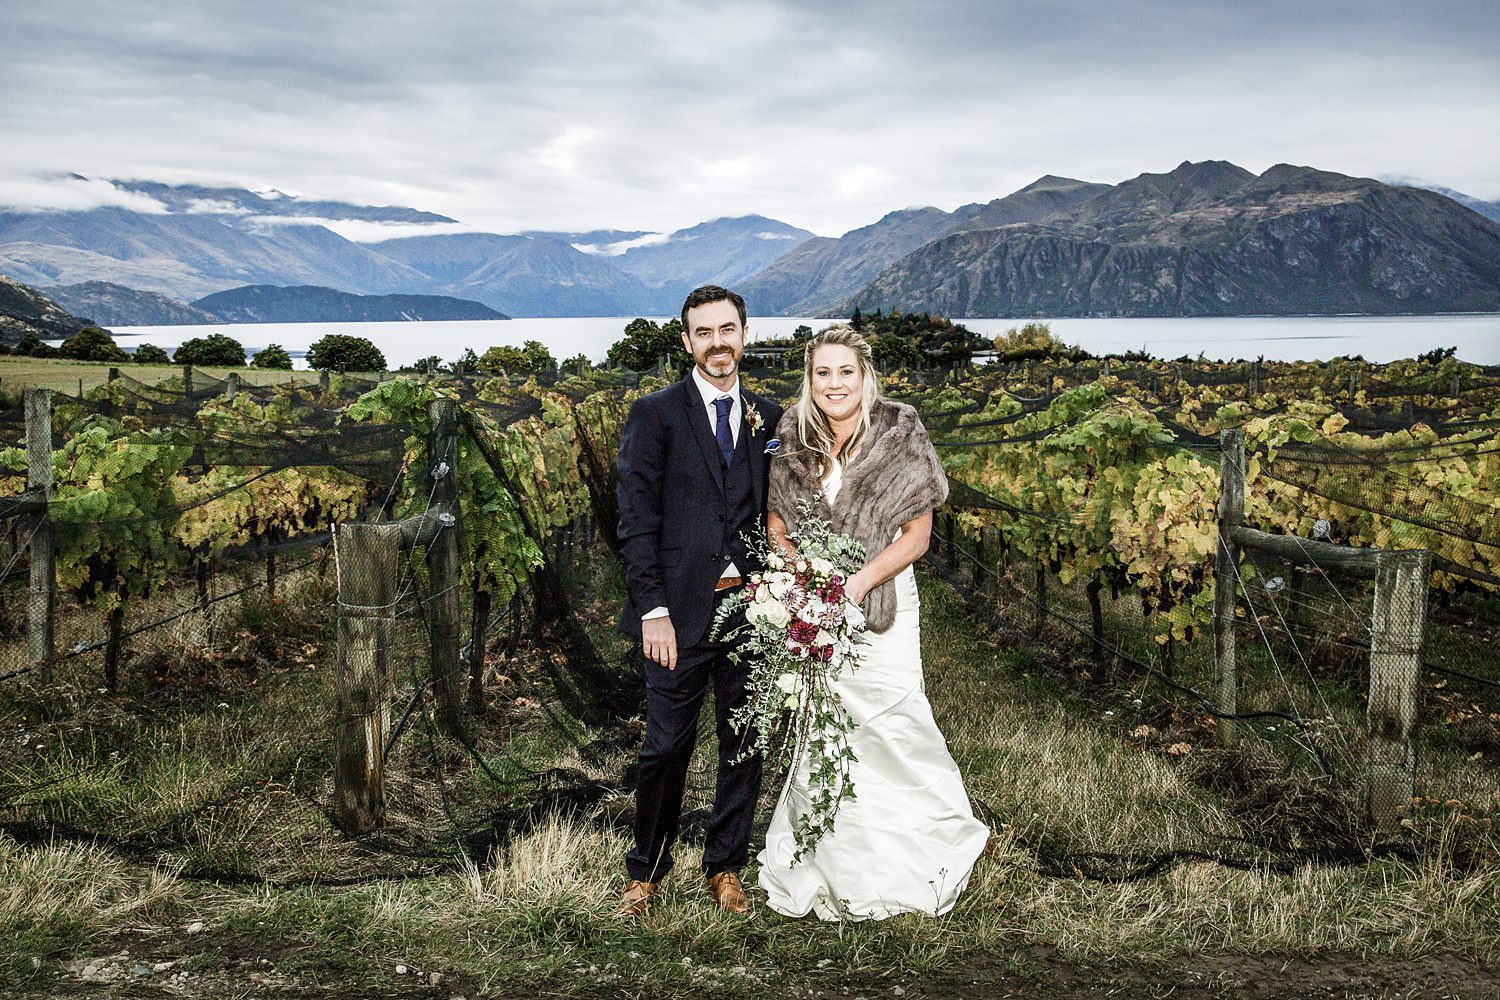 rippon-wedding-photography-25.jpg